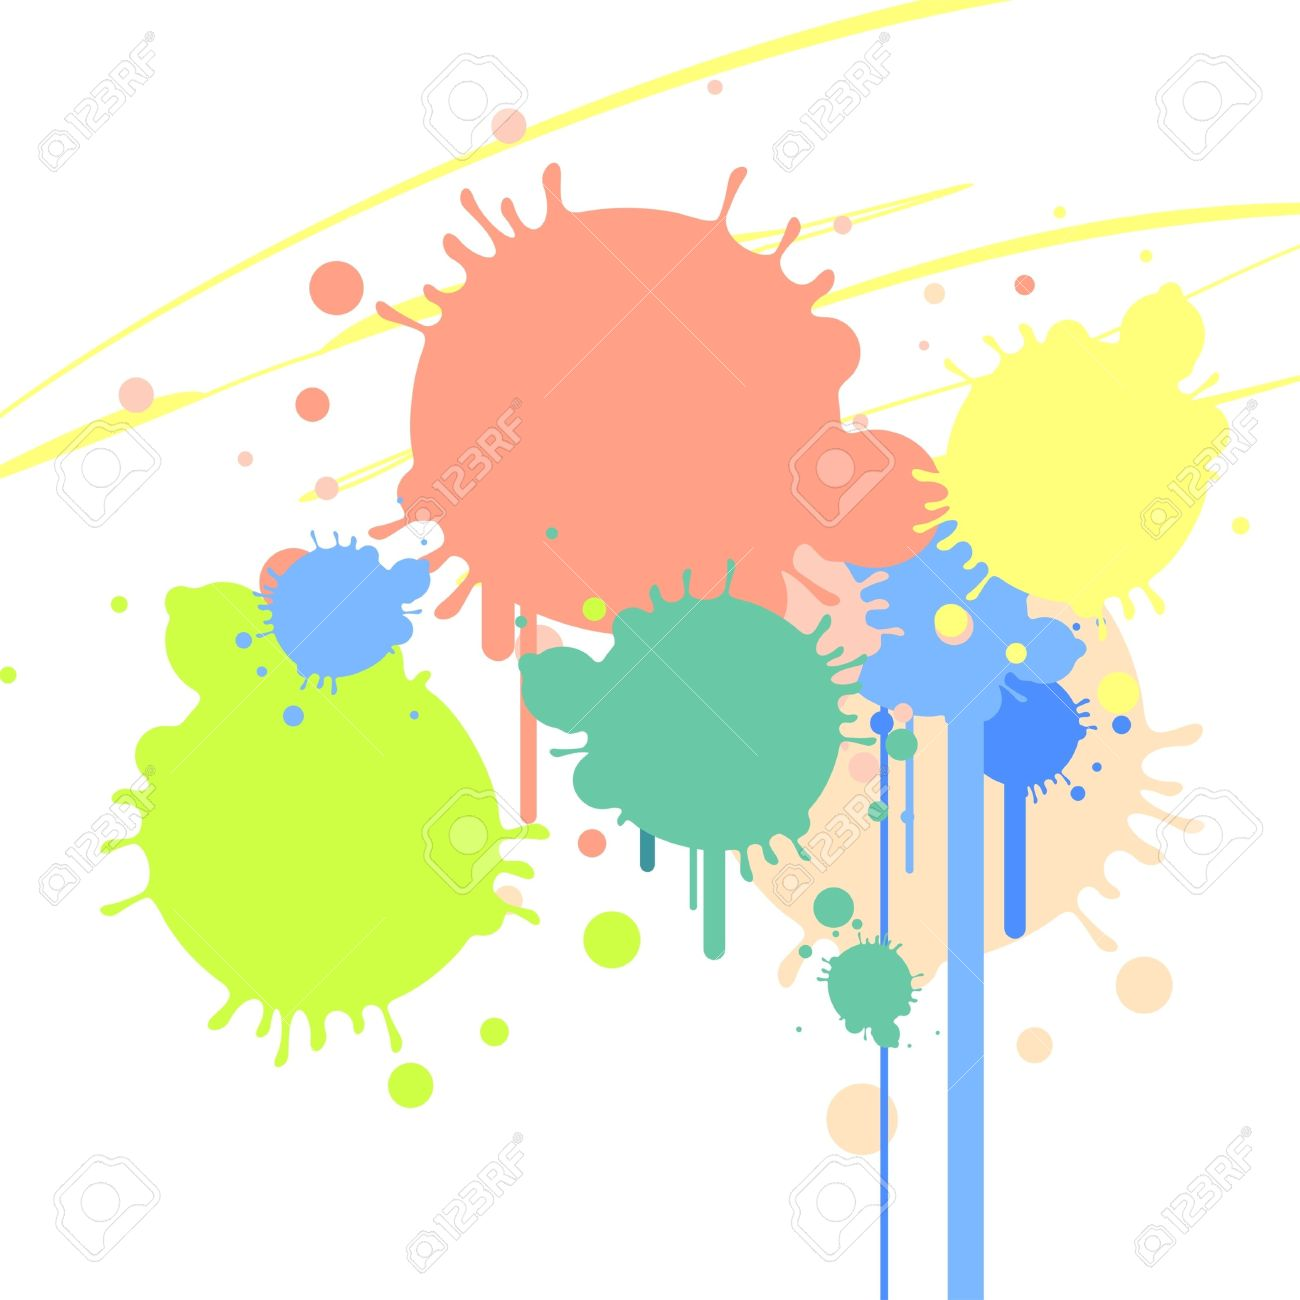 Background With Color Spots Royalty Free Cliparts, Vectors, And.